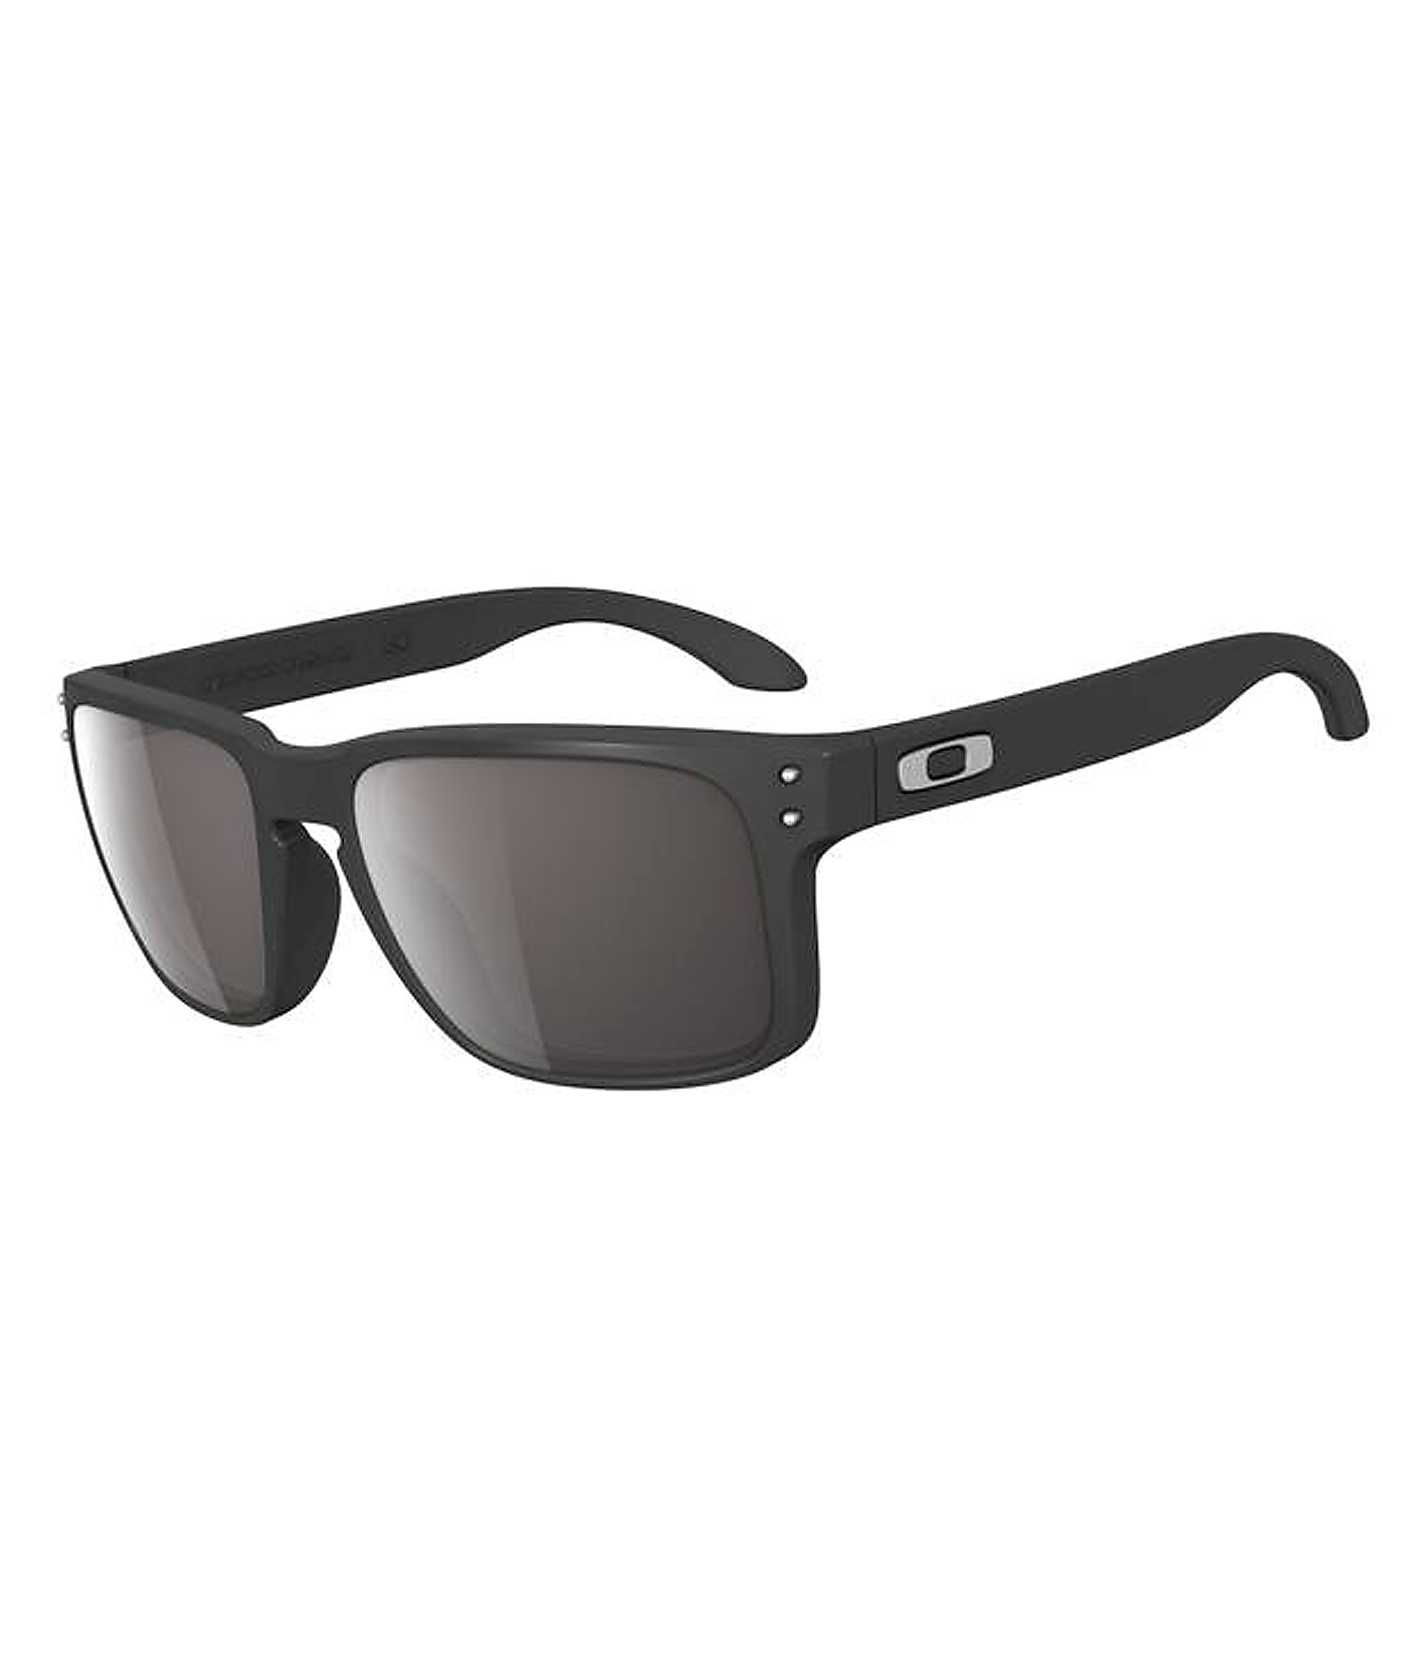 a9ee64283e Oakley Holbrook Sunglasses - Men's Accessories | Buckle | Mens ...